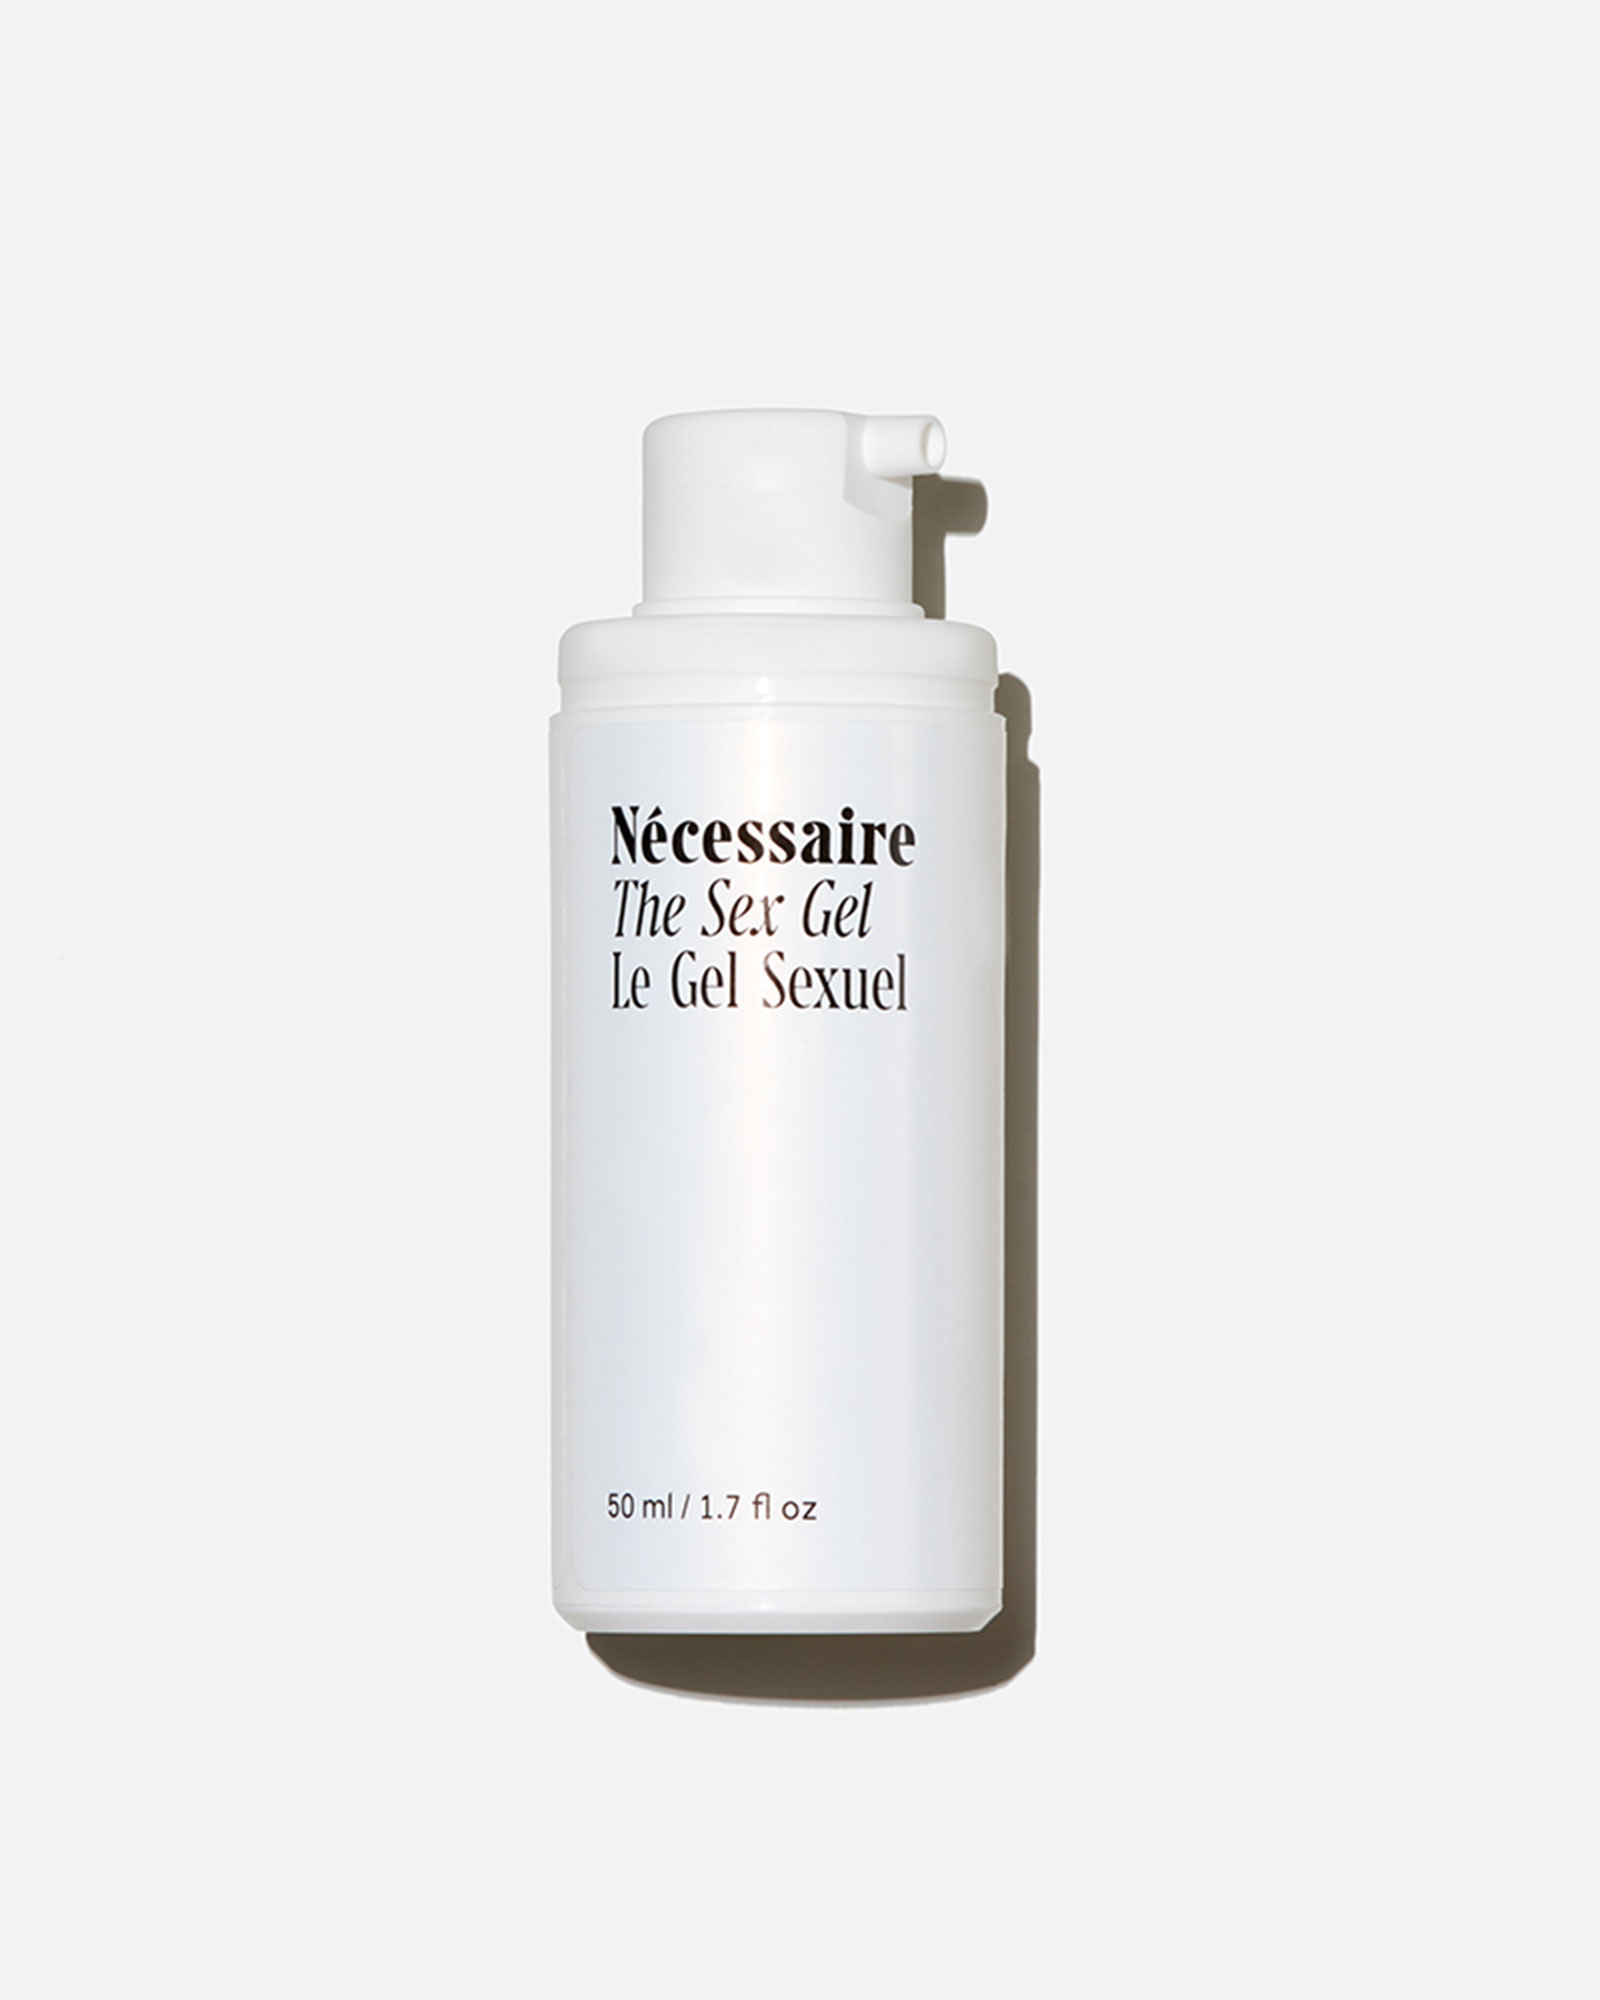 Valentine's Day Gift Guide 2019: Beauty and Fashion Ideas for the Lady in Your Life - Started by beauty industry vets Nick Axelrod and Randi Christiansen, this personal care brand is all about delivering clean, active and pH-optimized products, and the water-based lubricant includes organic aloe and hyaluronic acid. $20, necessaire.com